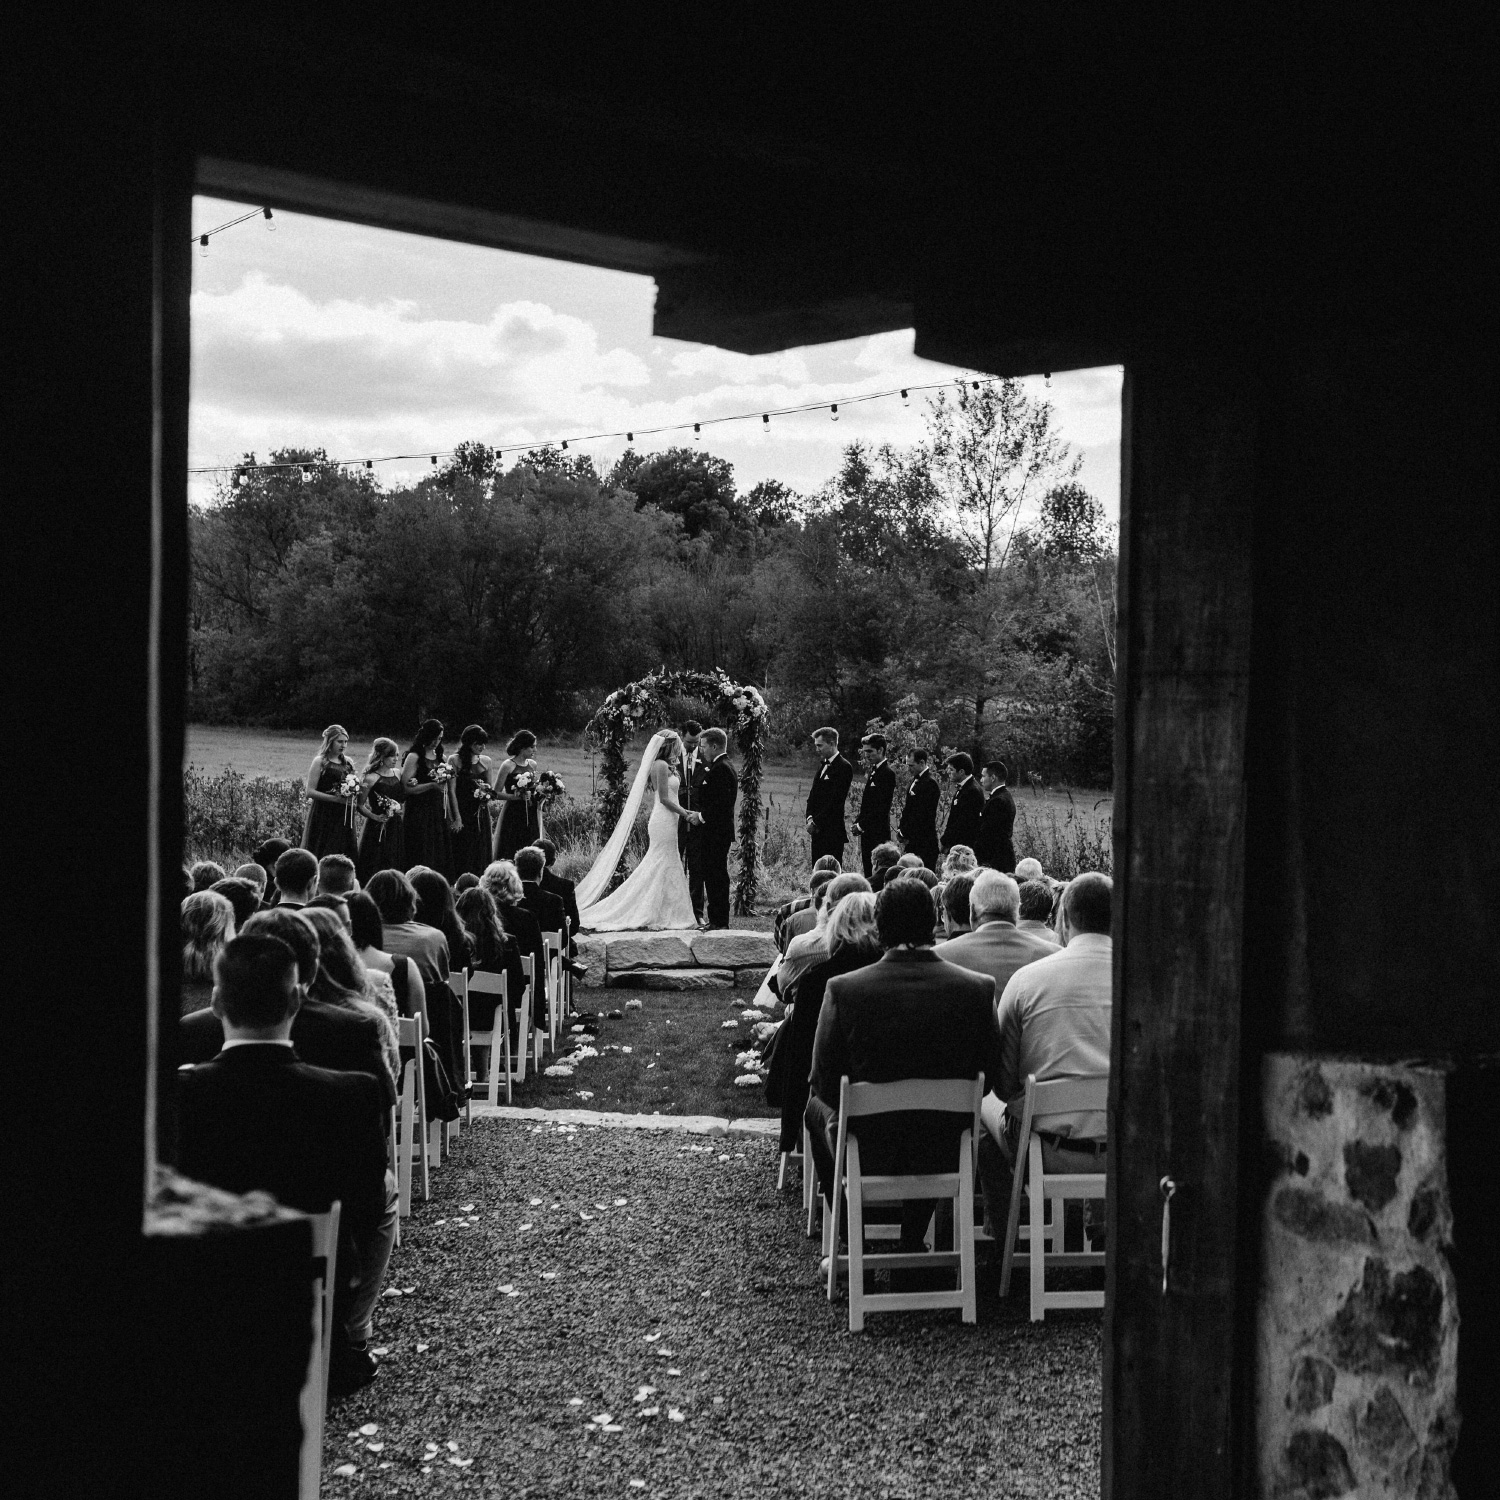 Wedding Ceremony fuji x100t geneoh photography camera review